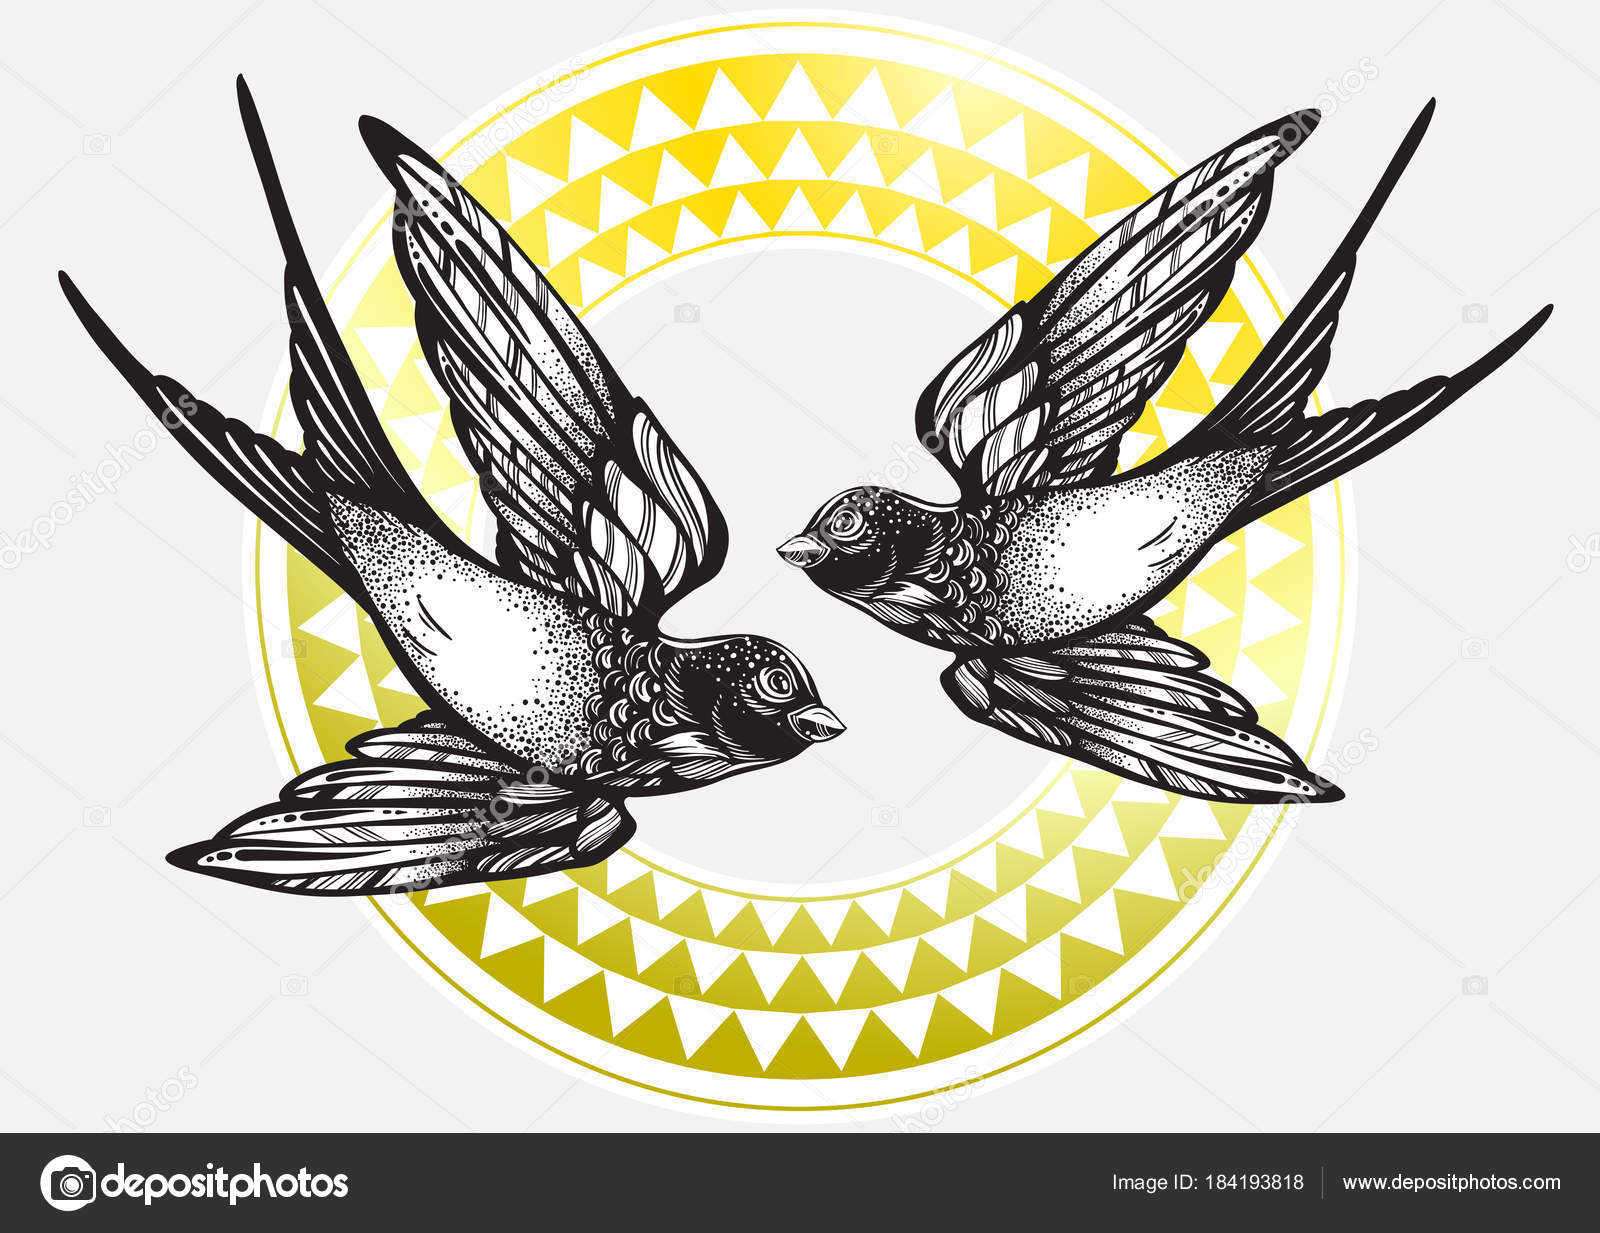 faee0c7cef770 Beautifully detailed vintage illustration with flying swallow birds over  tribal geometric pattern. Vector artwork isolated. Elegant tattoo art,  freedom, ...